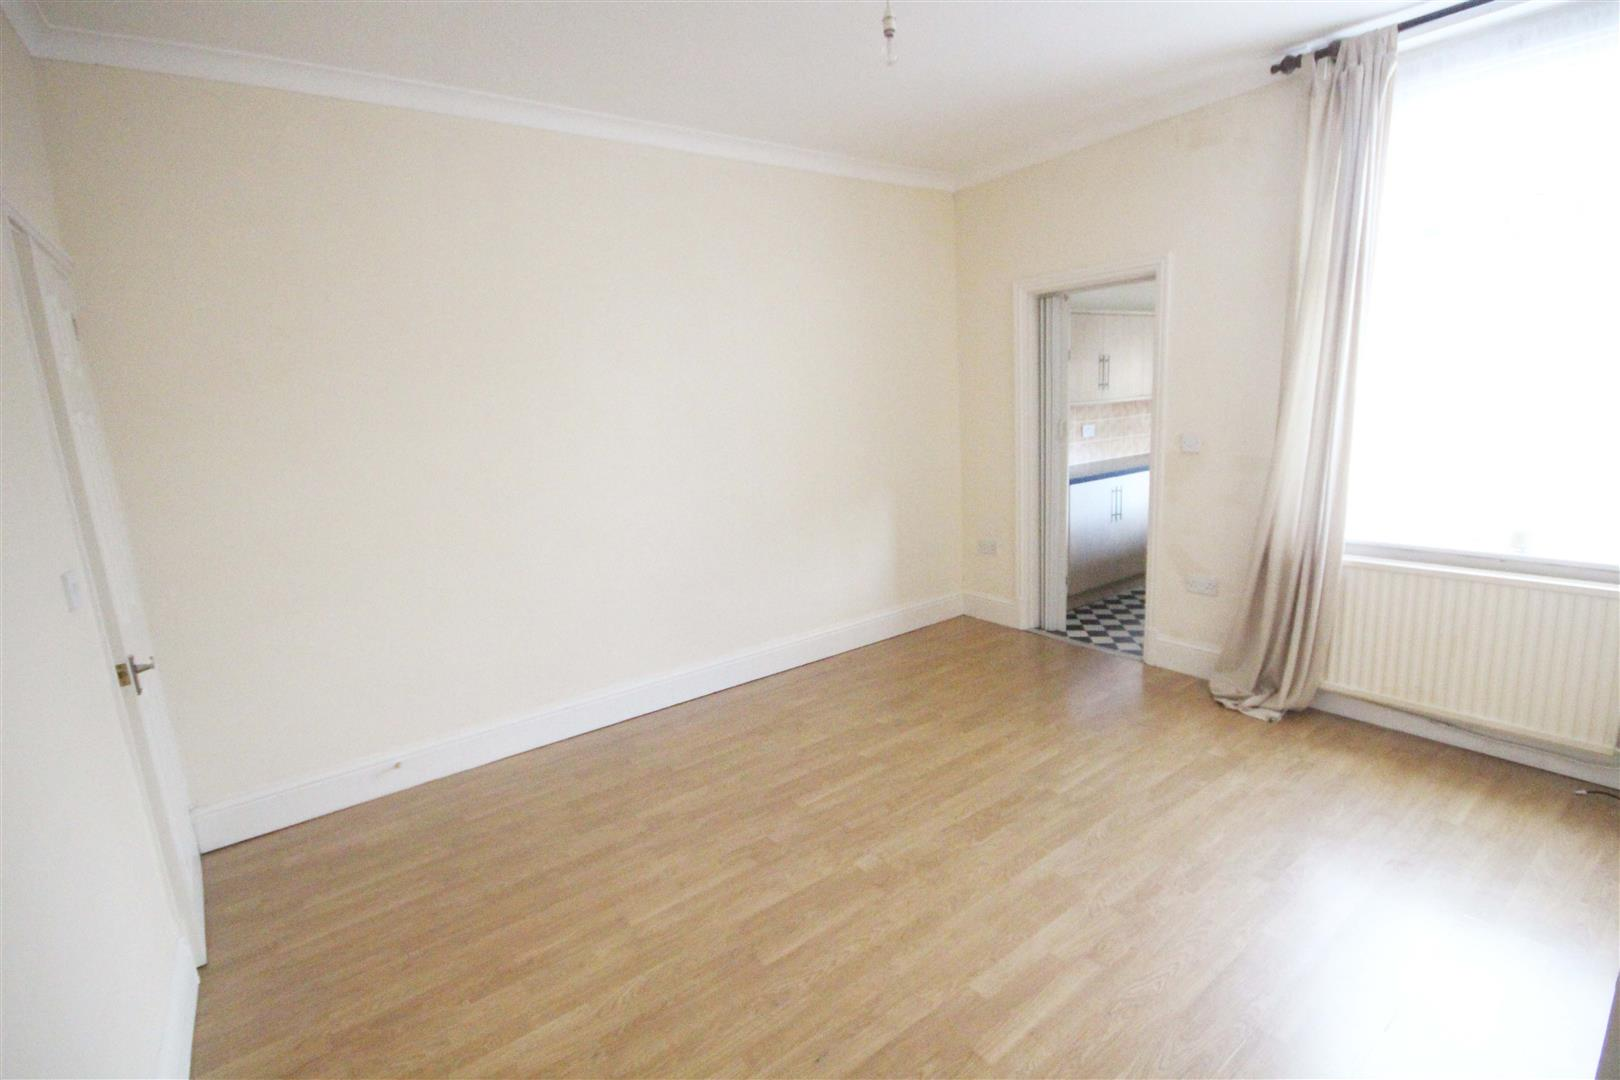 2 bedroom mid terrace house For Sale in Barnoldswick - IMG_7385.jpg